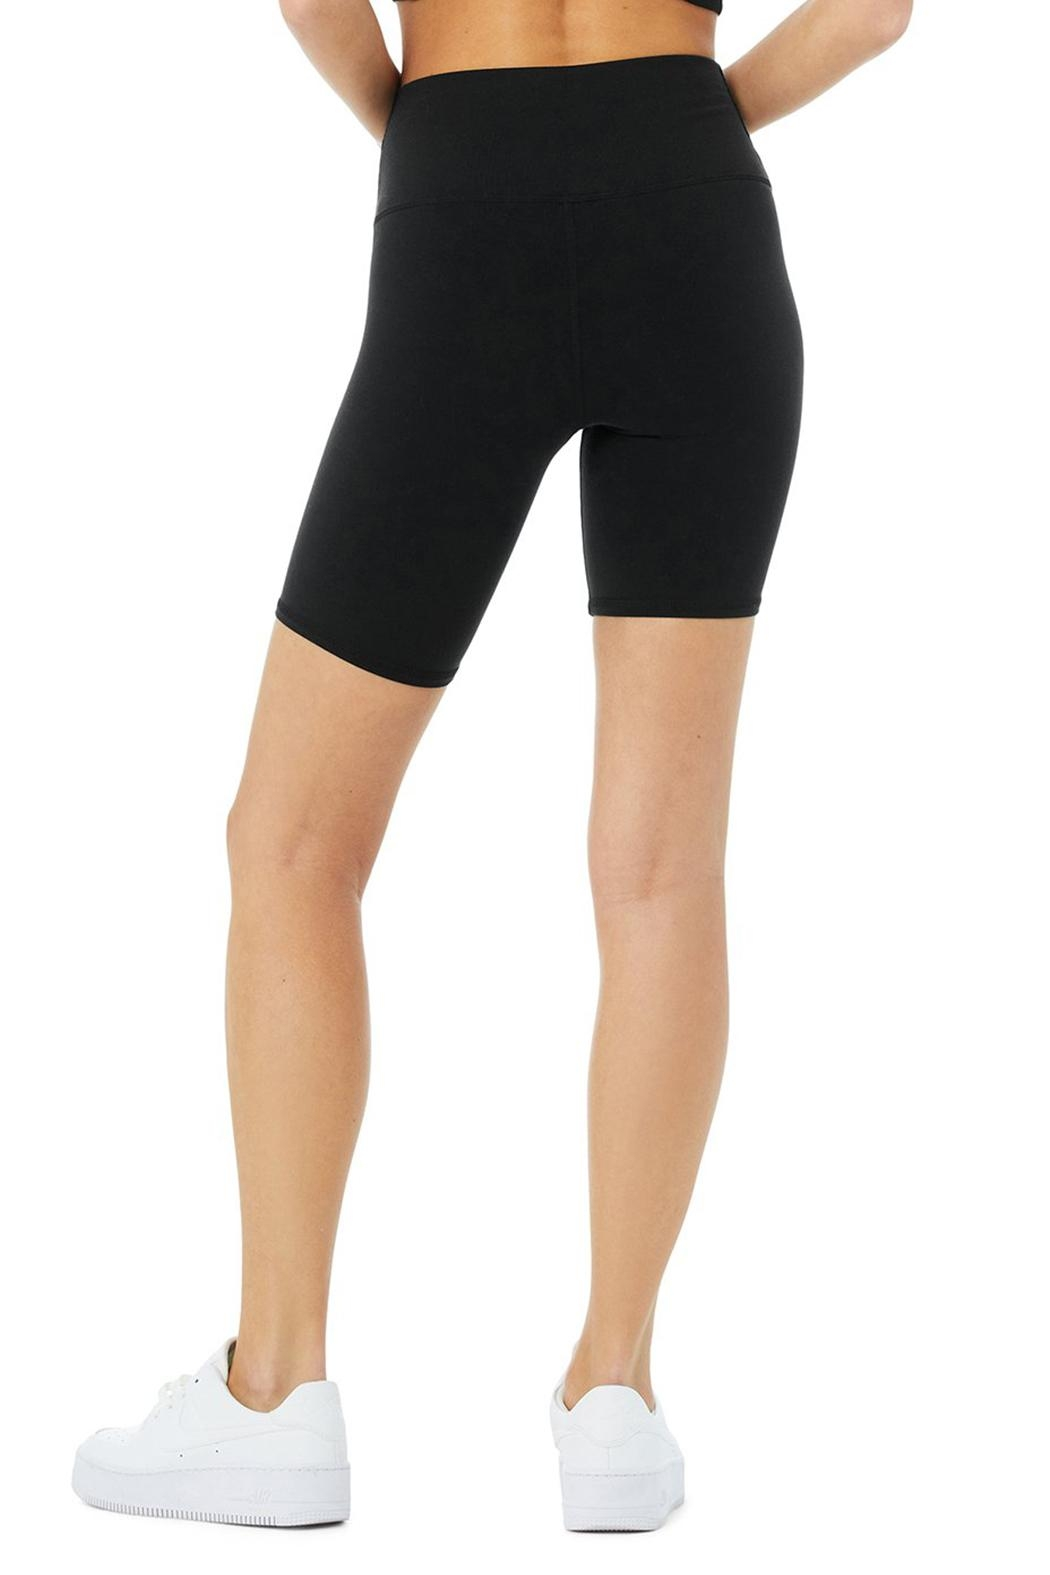 ALO High-Waist Biker Short - Side Cropped Image